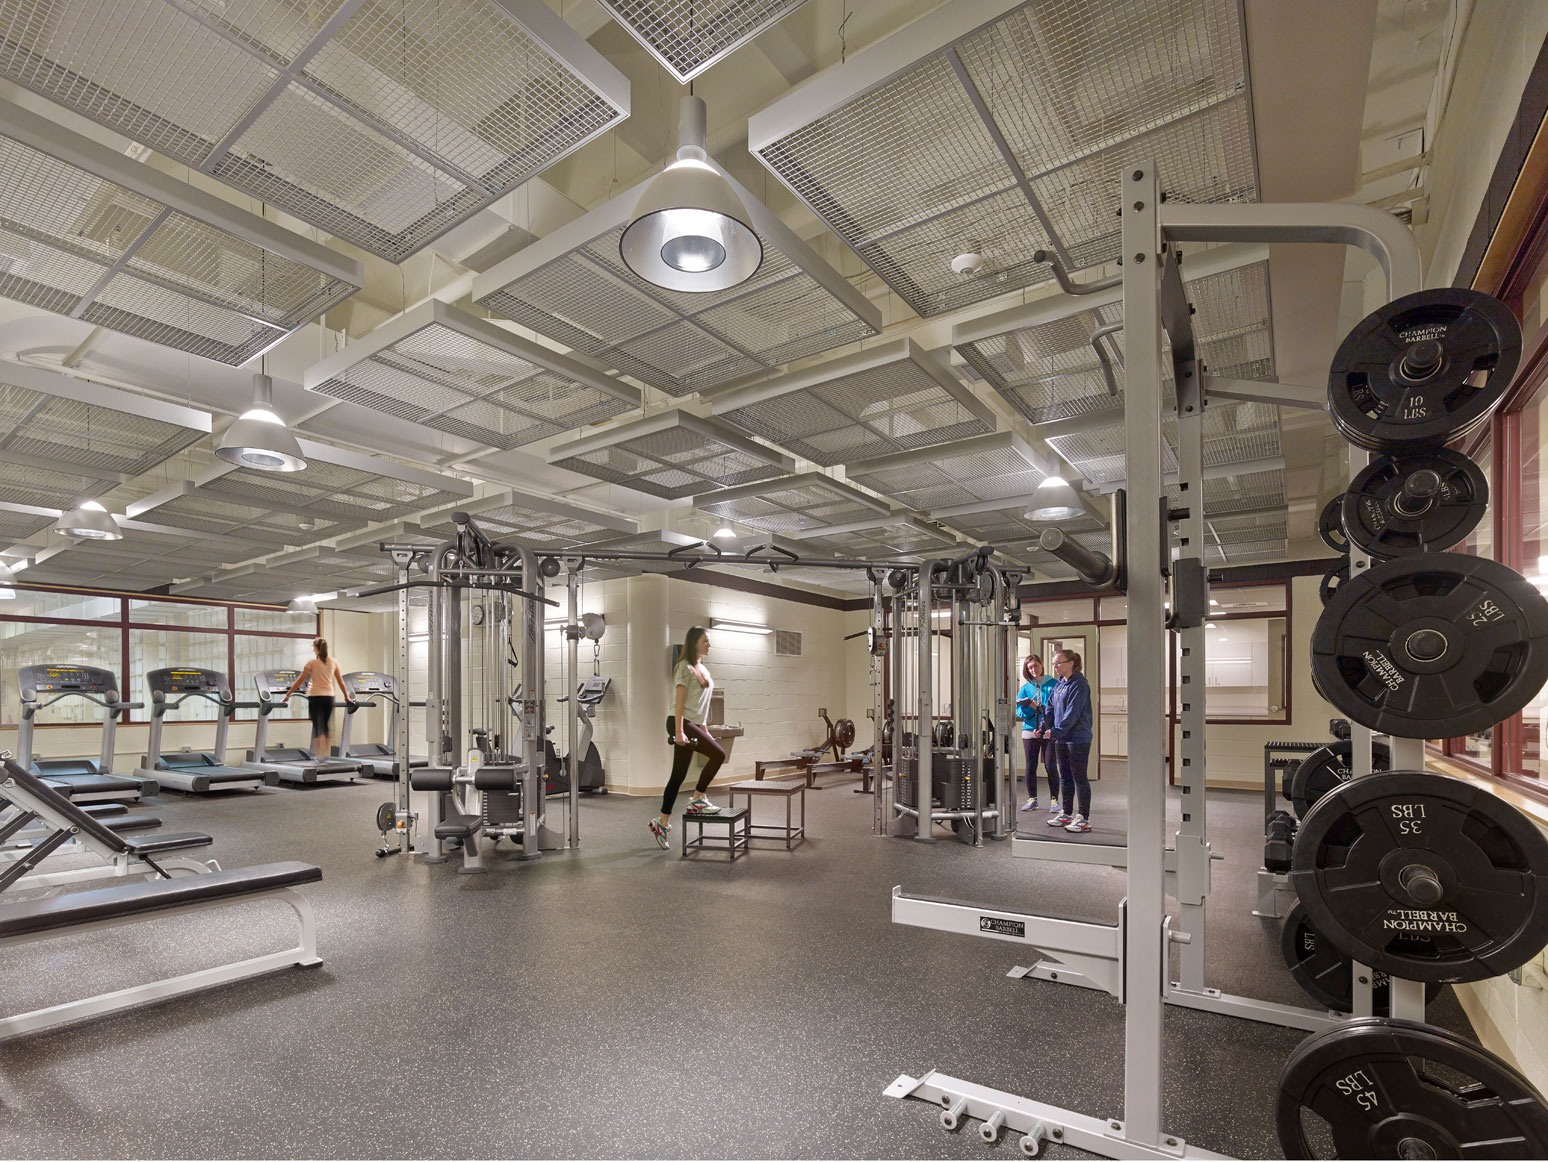 interior image of weight room renovation project management for school construction projects